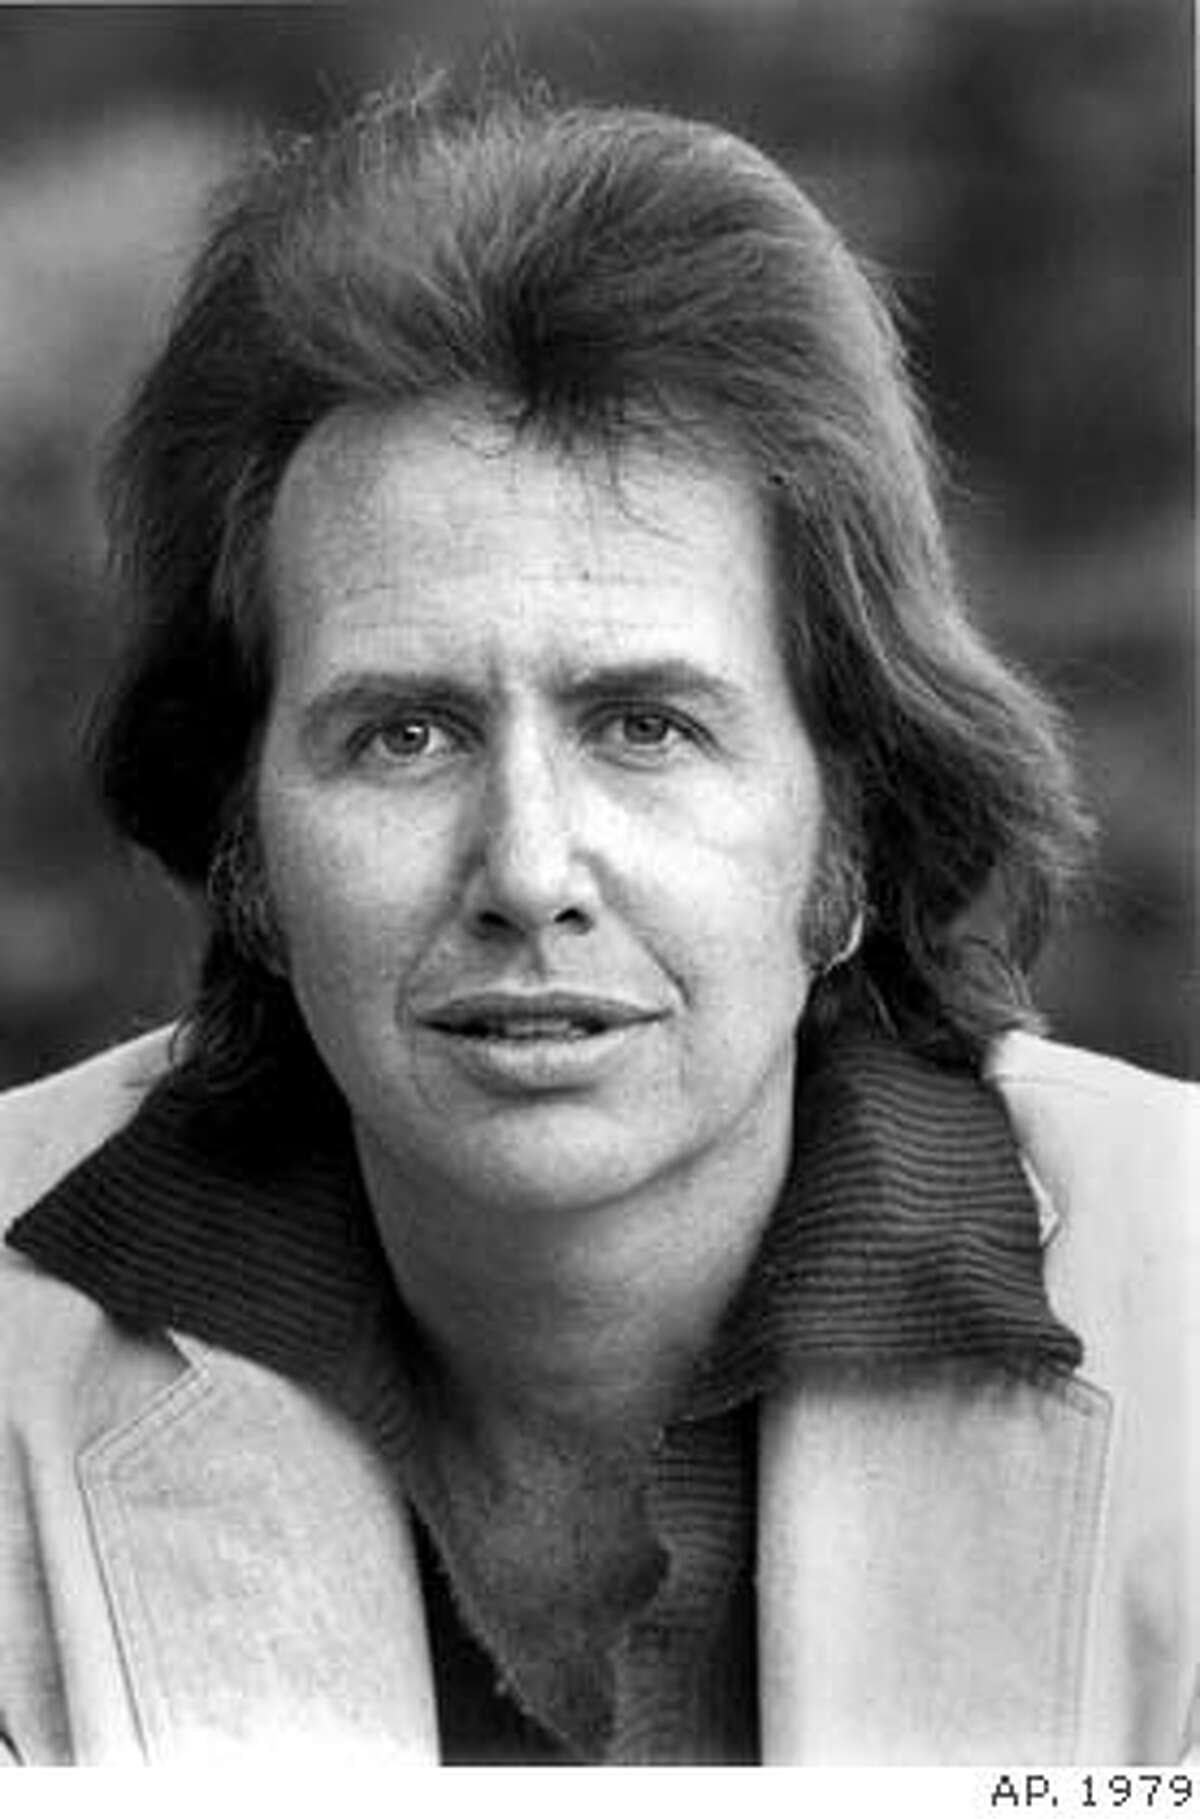 ** FILE ** This 1979 file picture shows musician John Stewart. Stewart, who came to prominence in the 1960s as a member of folk music's Kingston Trio, died Saturday, Jan. 19, 2008 at a San Diego hospital after suffering a brain aneurism. He was 68. (AP Photo)